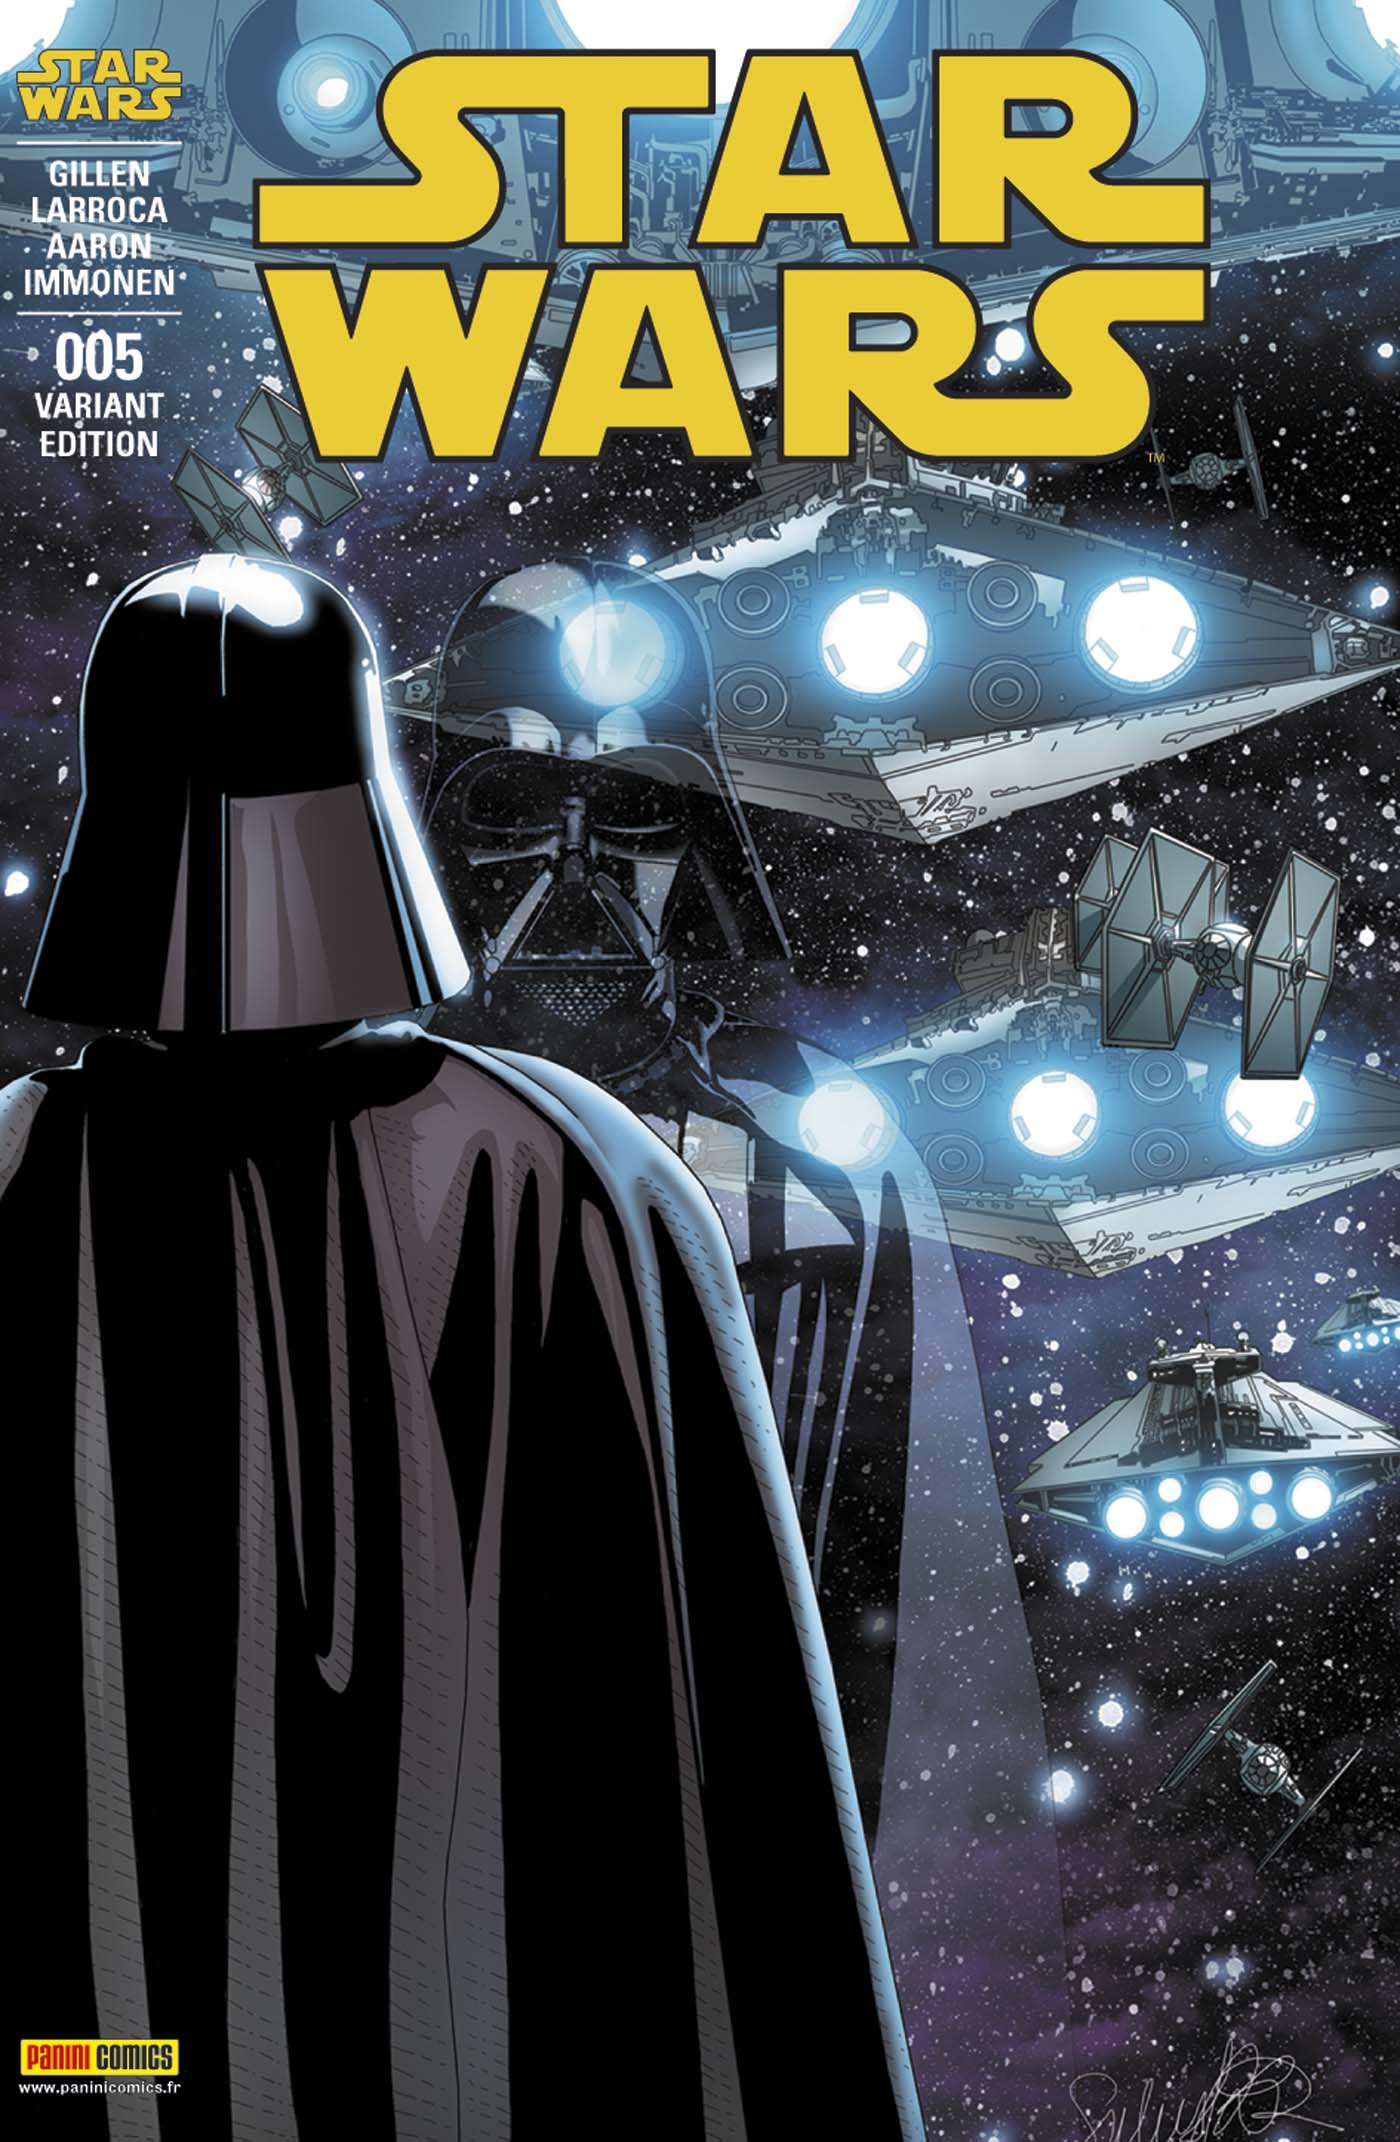 Star Wars Comics 5 - Couverture B